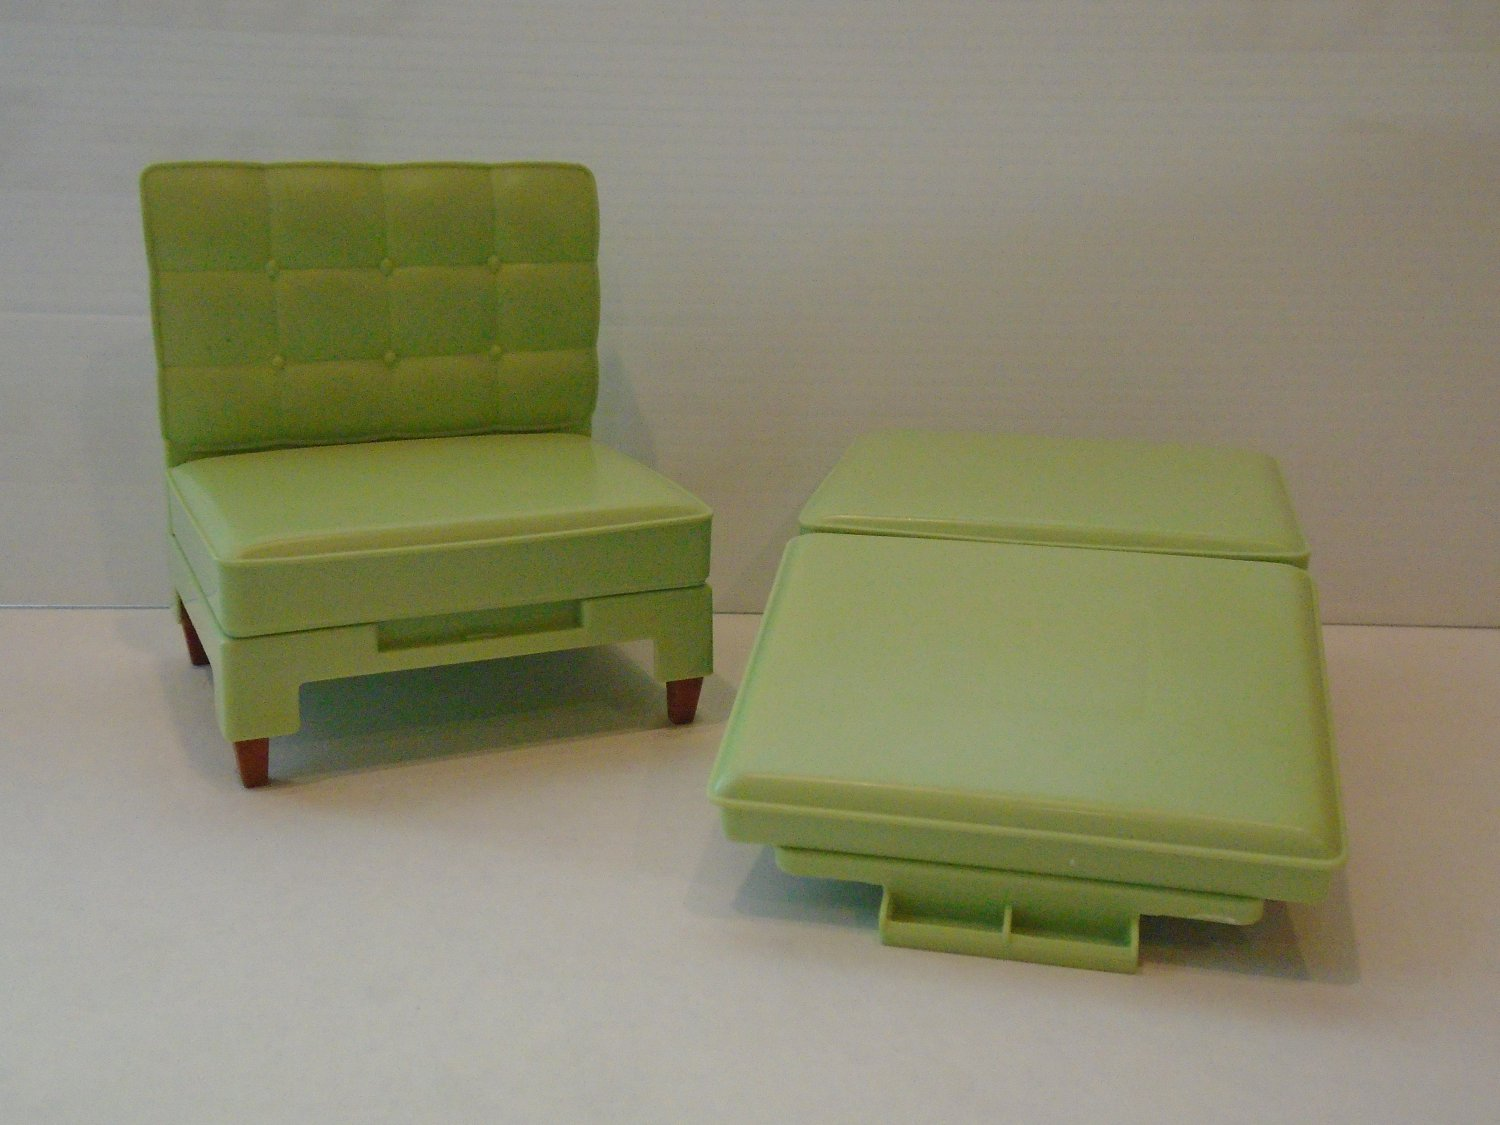 Chair Converts To Bed Vintage Barbie Green Chair And Ottoman Converts To Bed Clb 968